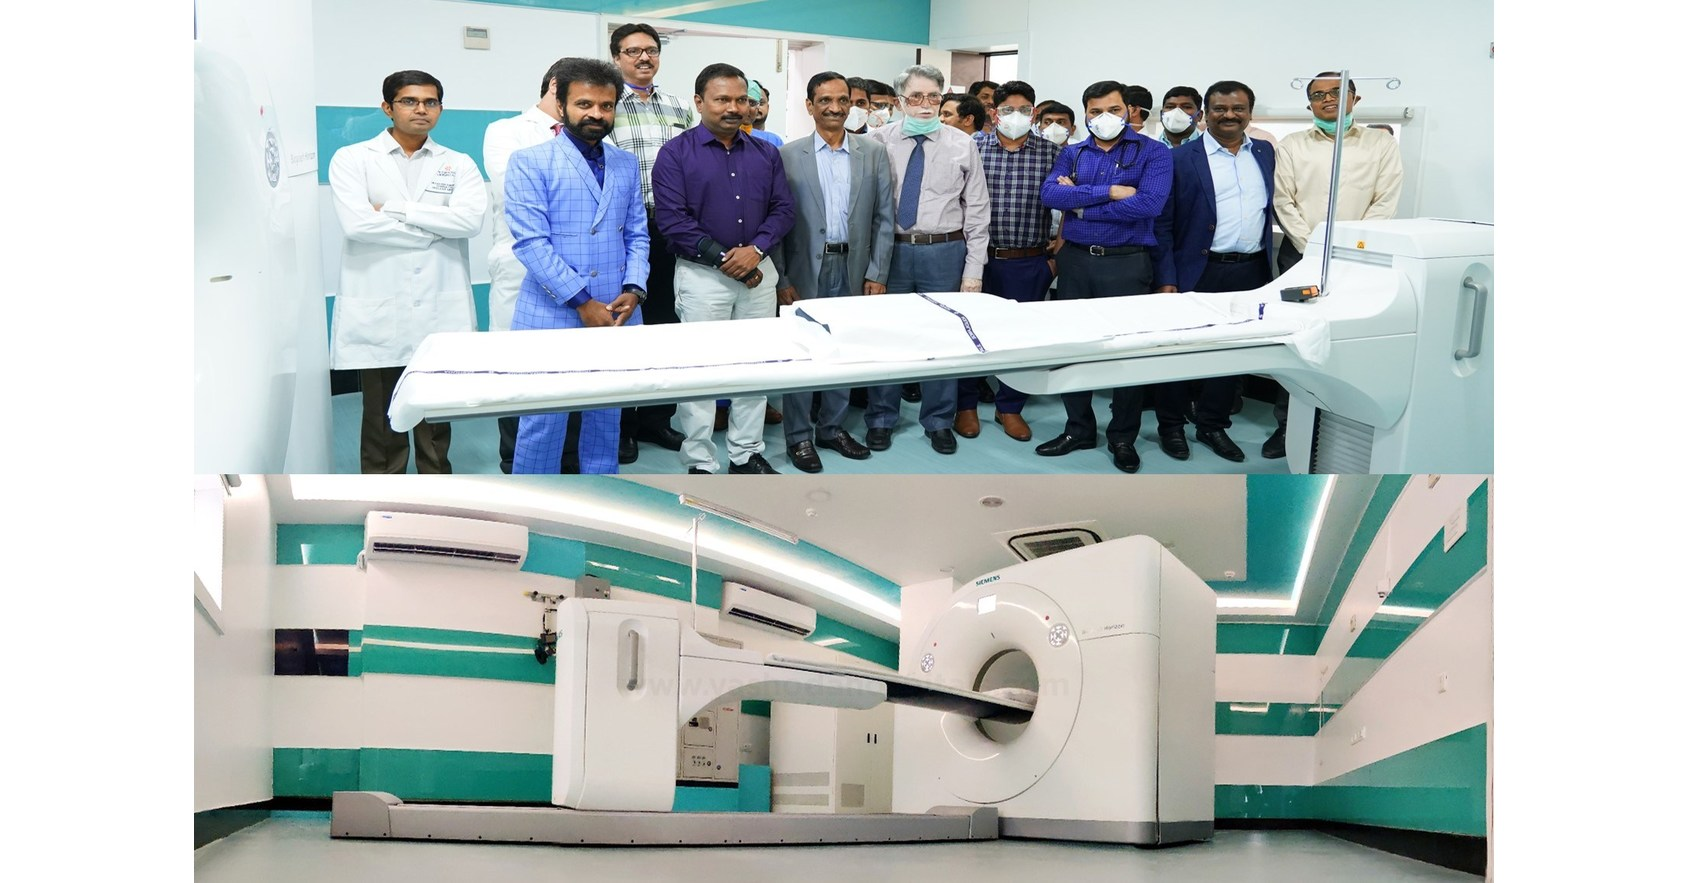 'Artificial Intelligence' Integrated PET-CT launched at Yashoda Hospitals, Hyderabad on the occasion of World Cancer Day 2021 - PR Newswire India